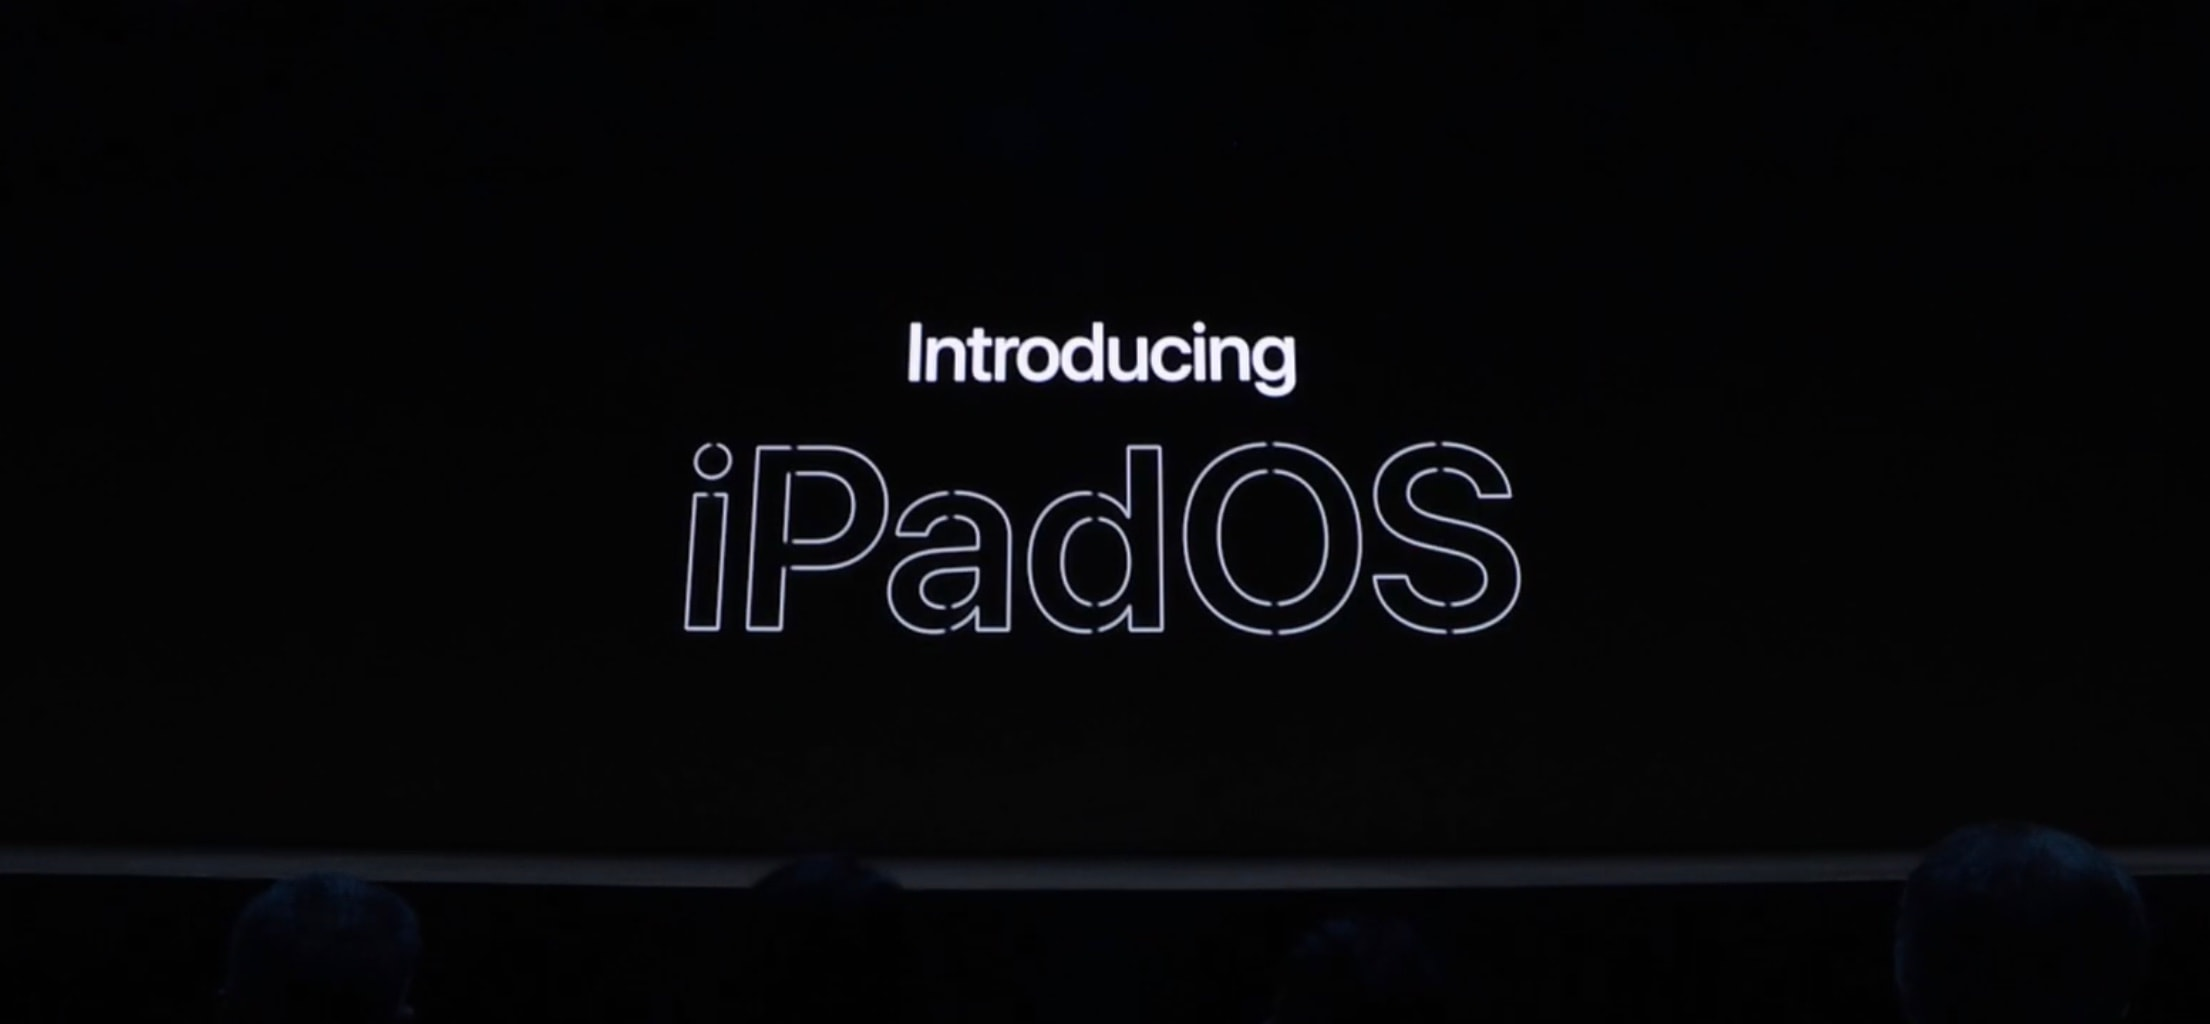 iPadOS is the new name of the tablet version of iOS.